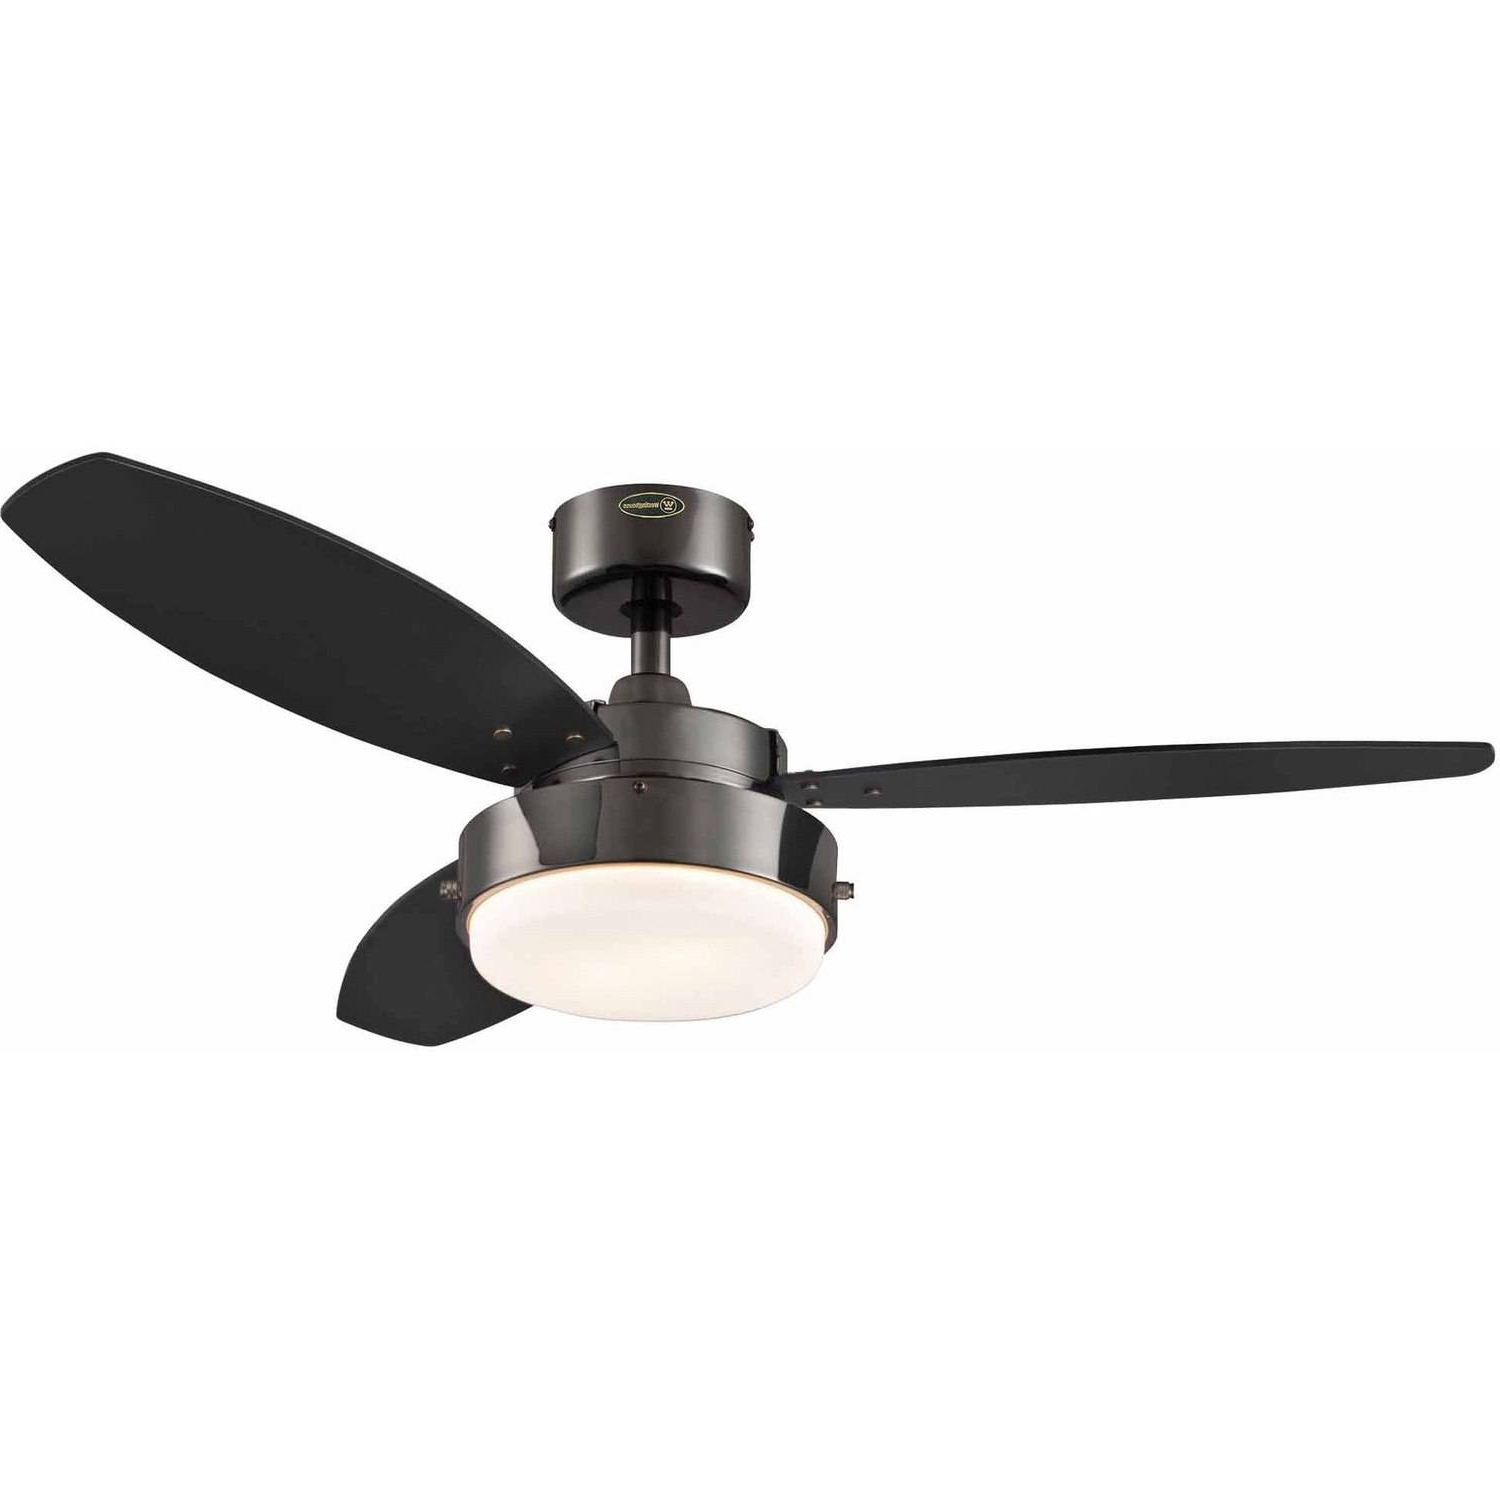 Latest Black Outdoor Ceiling Fans With Light Throughout Ceiling Fan: Outstanding Black Outdoor Ceiling Fans With Lights (View 15 of 20)